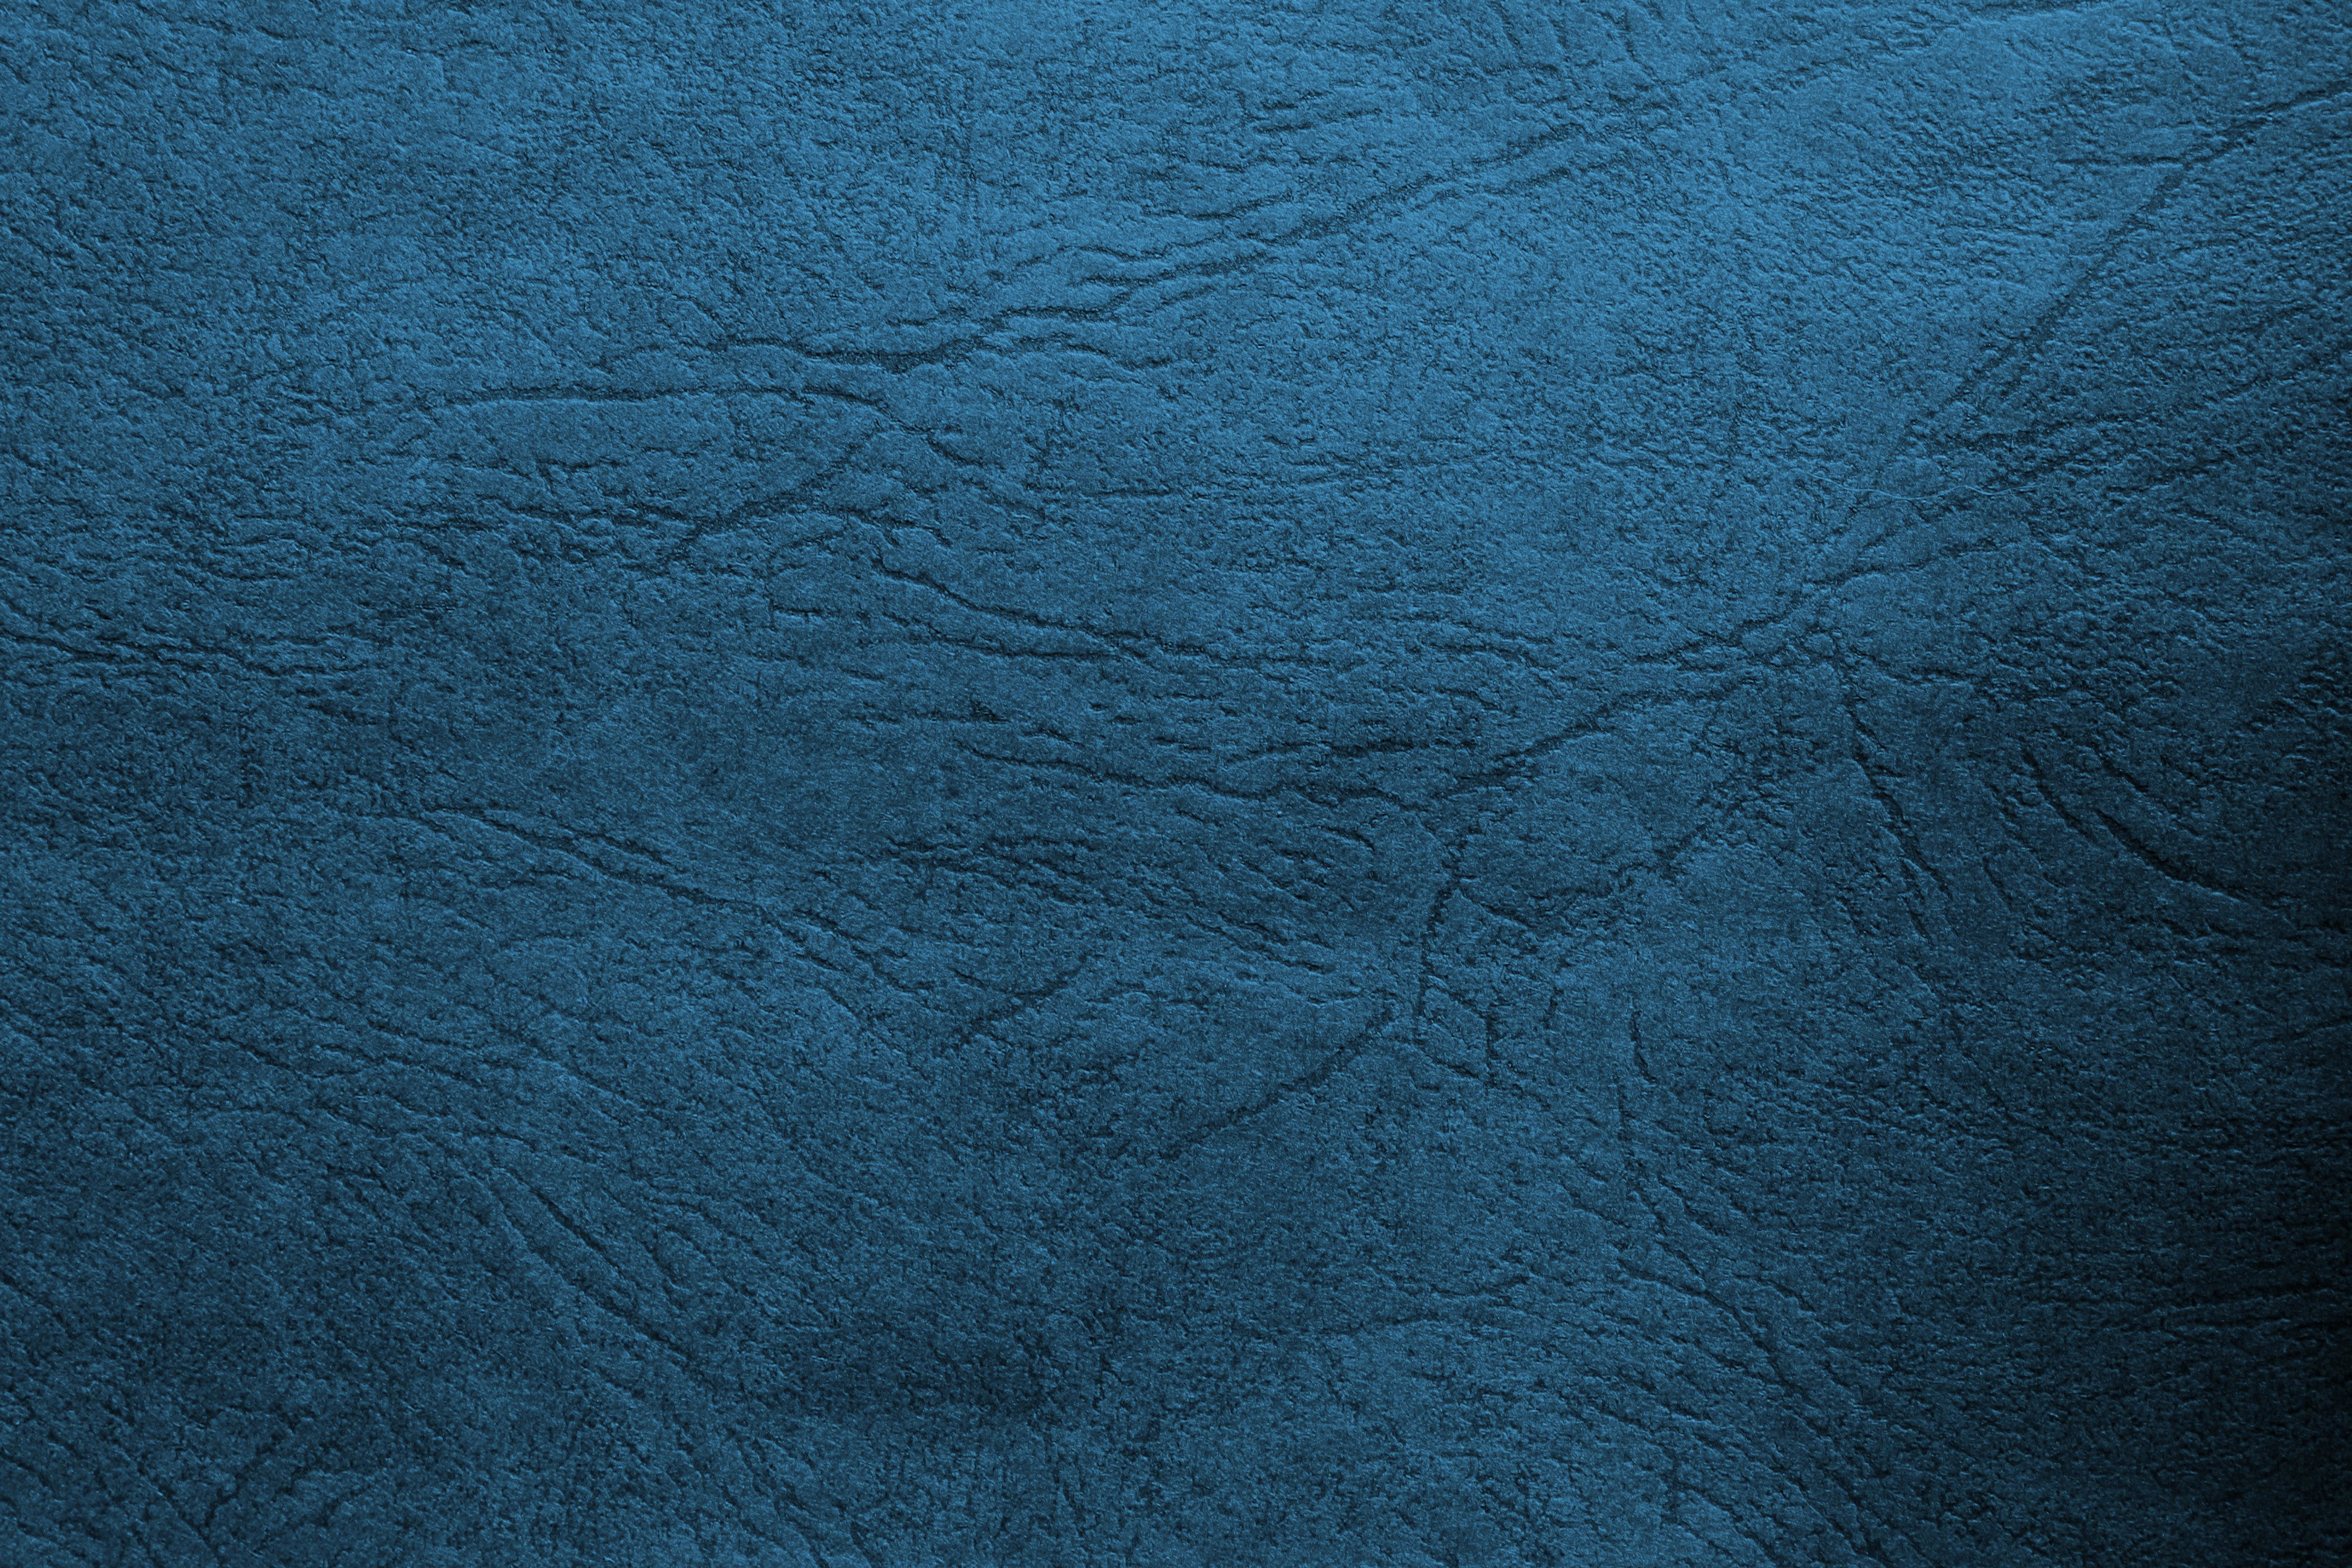 Leather Textures clipart blue leather Blue Texture Free Photograph Leather